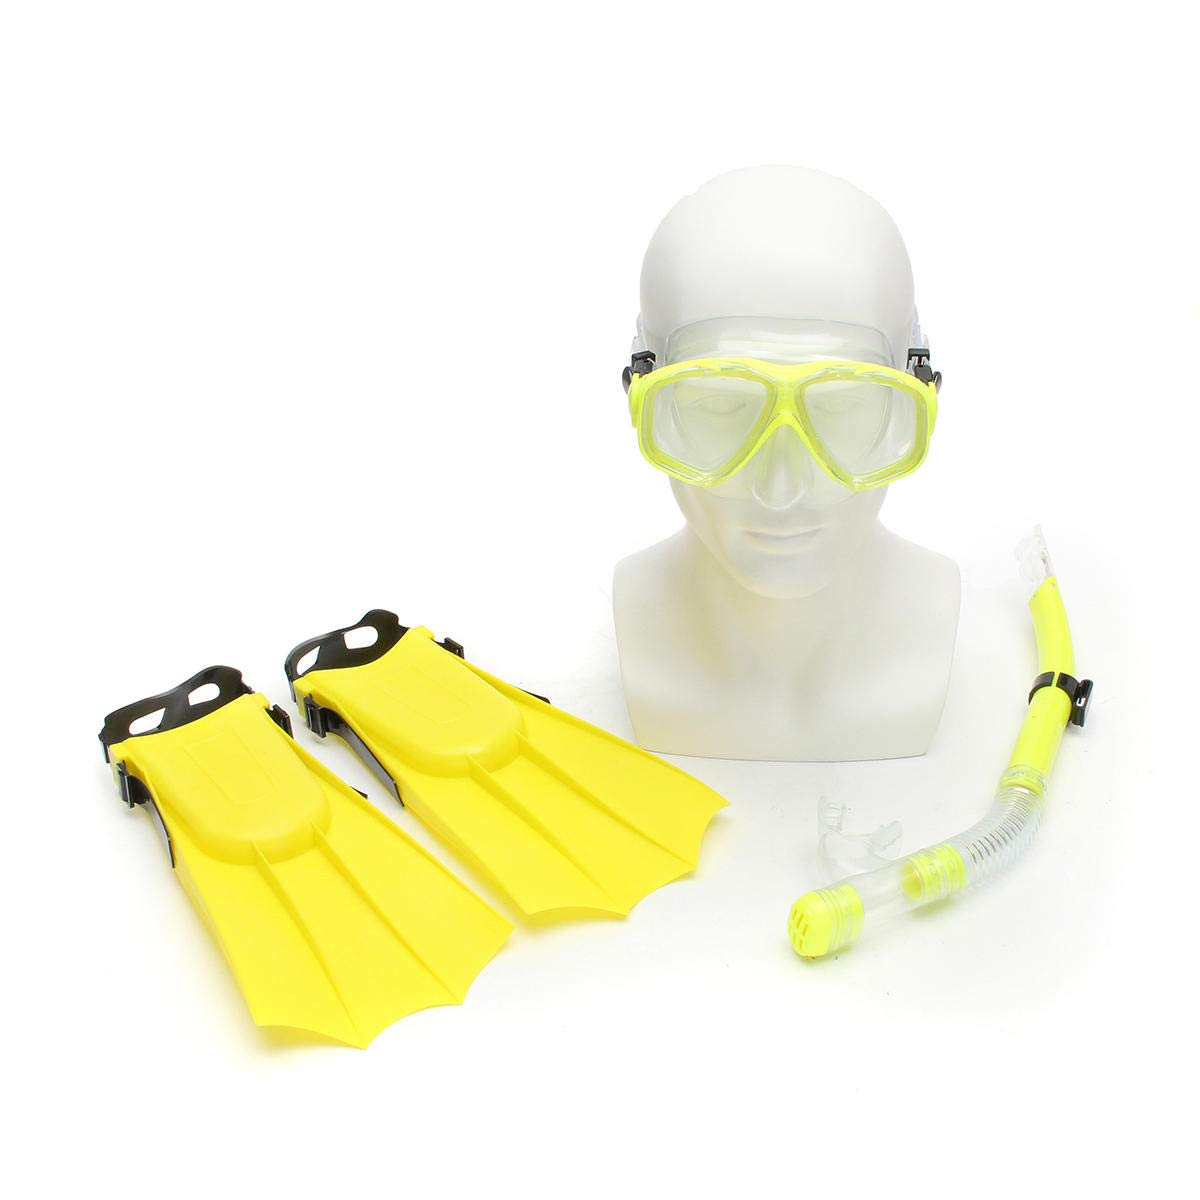 Shop Sport Kid Snorkel Mask Scuba Goggles + Breathing Tube+ Webbed Feet Swimming Diving Set - Yellow by Shop Sport (Image #1)